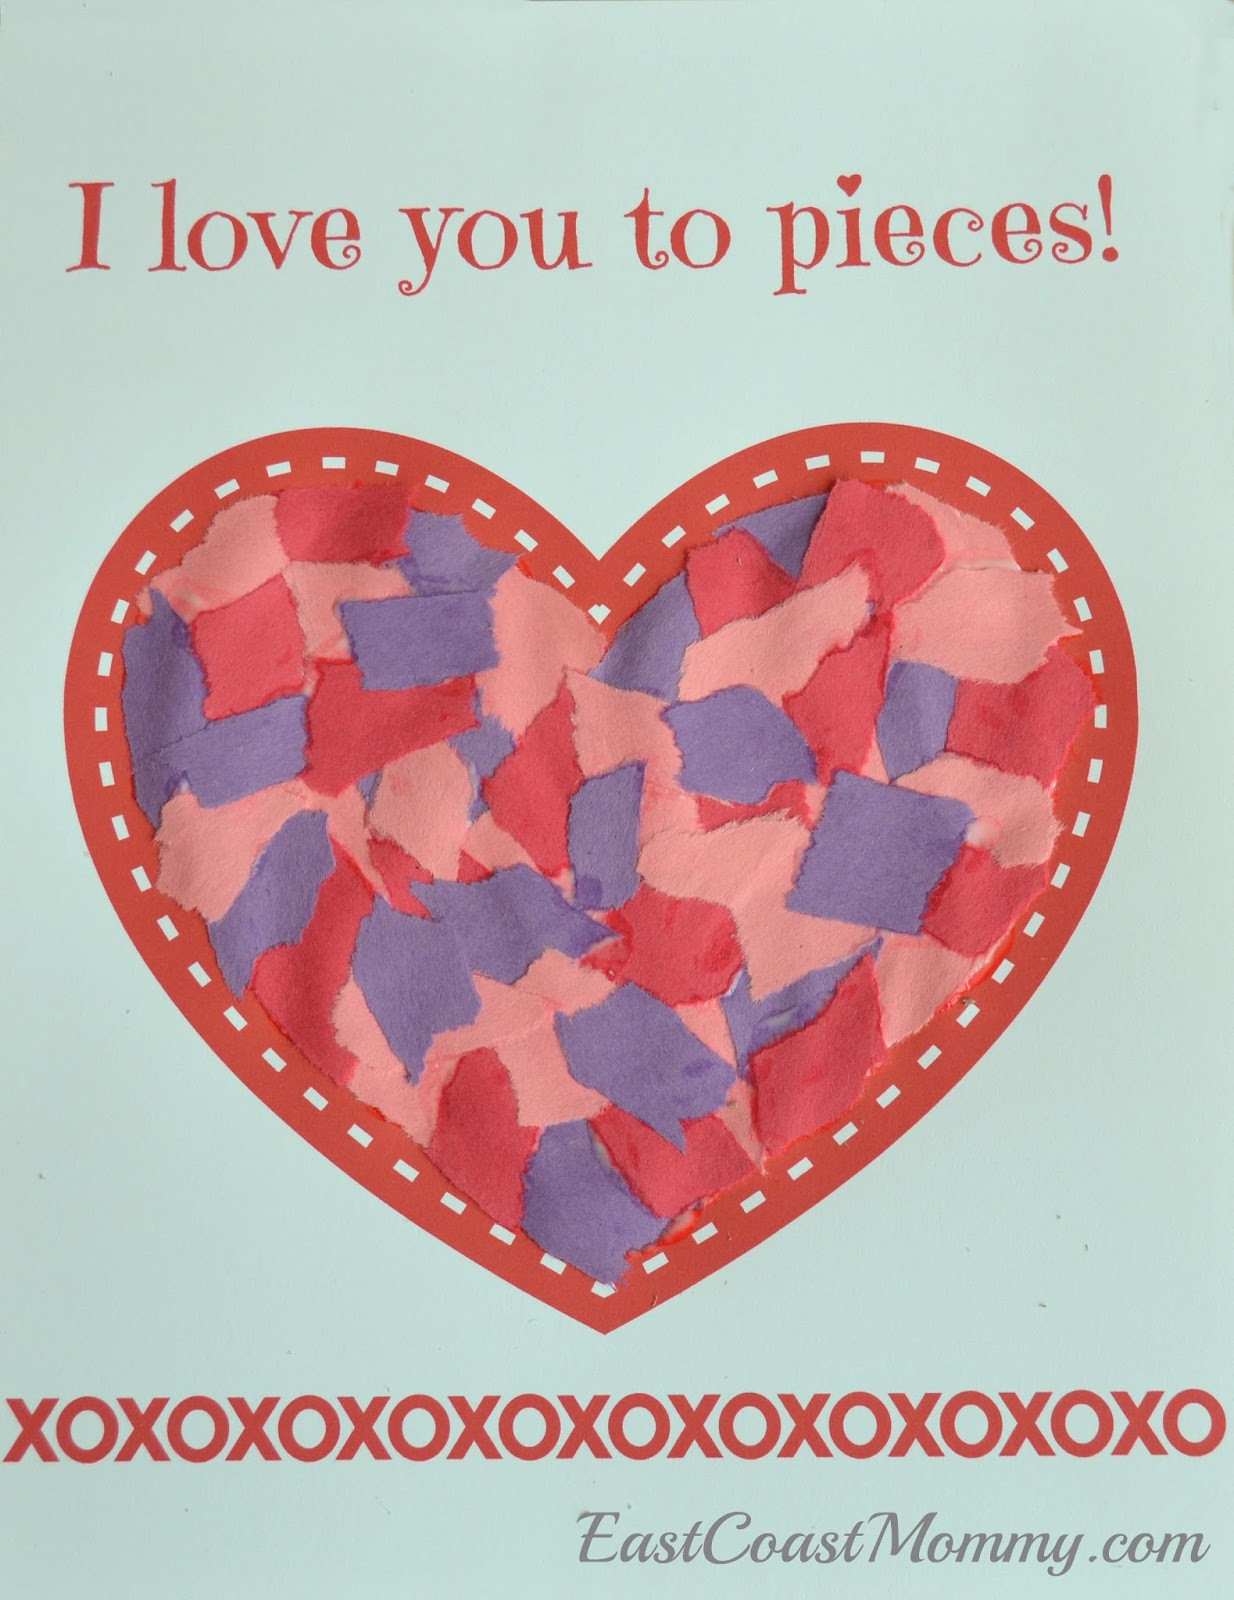 Best ideas about Valentines Craft Ideas For Preschoolers . Save or Pin Printable Valentines Day Crafts For Preschoolers Now.